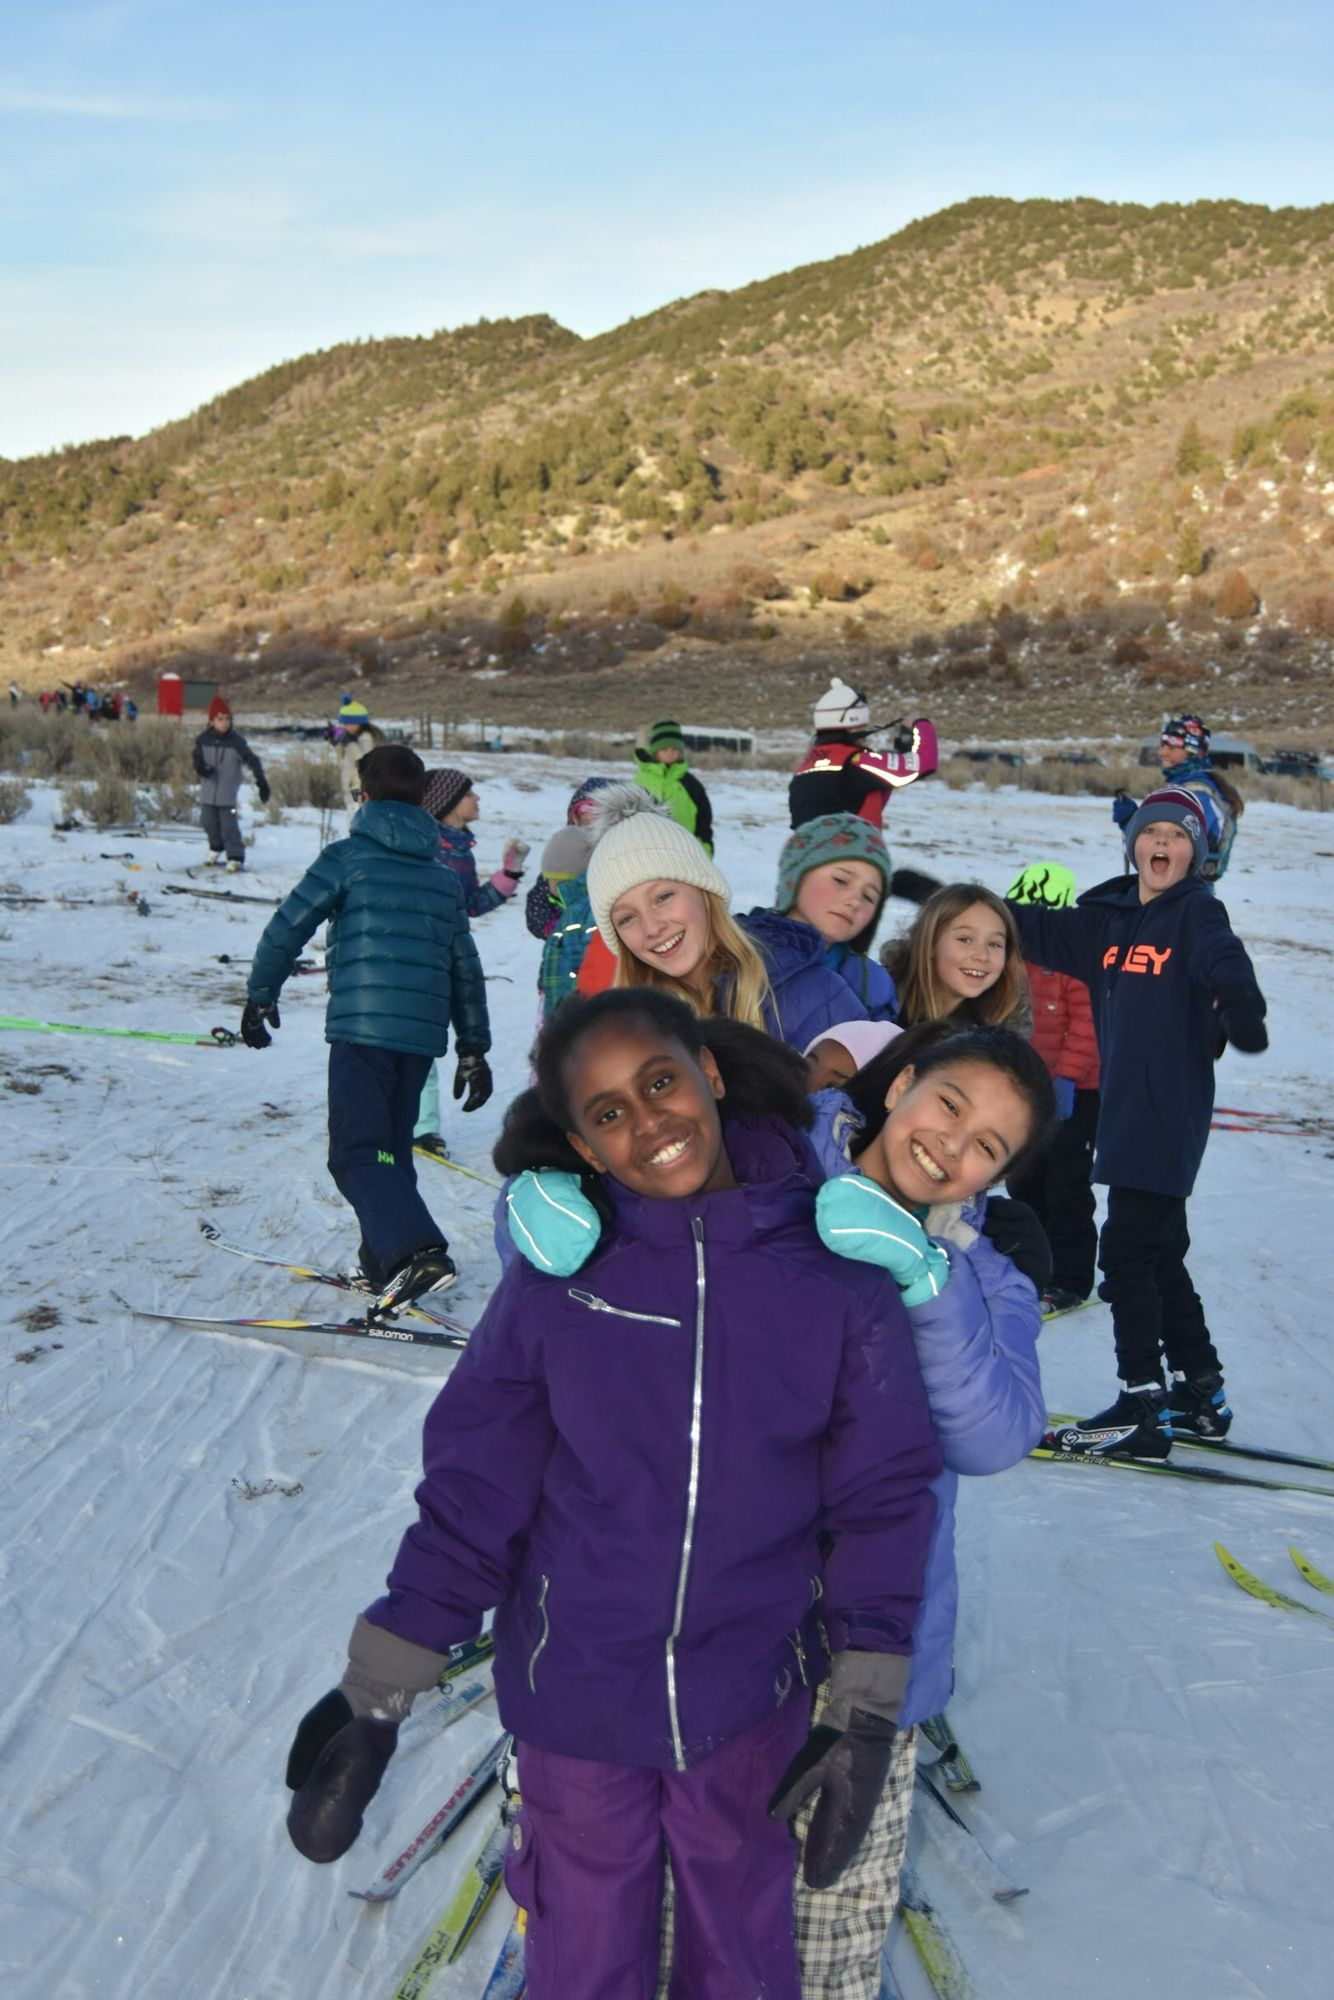 Bill Koch Youth Ski League athletes at Spring Gulch